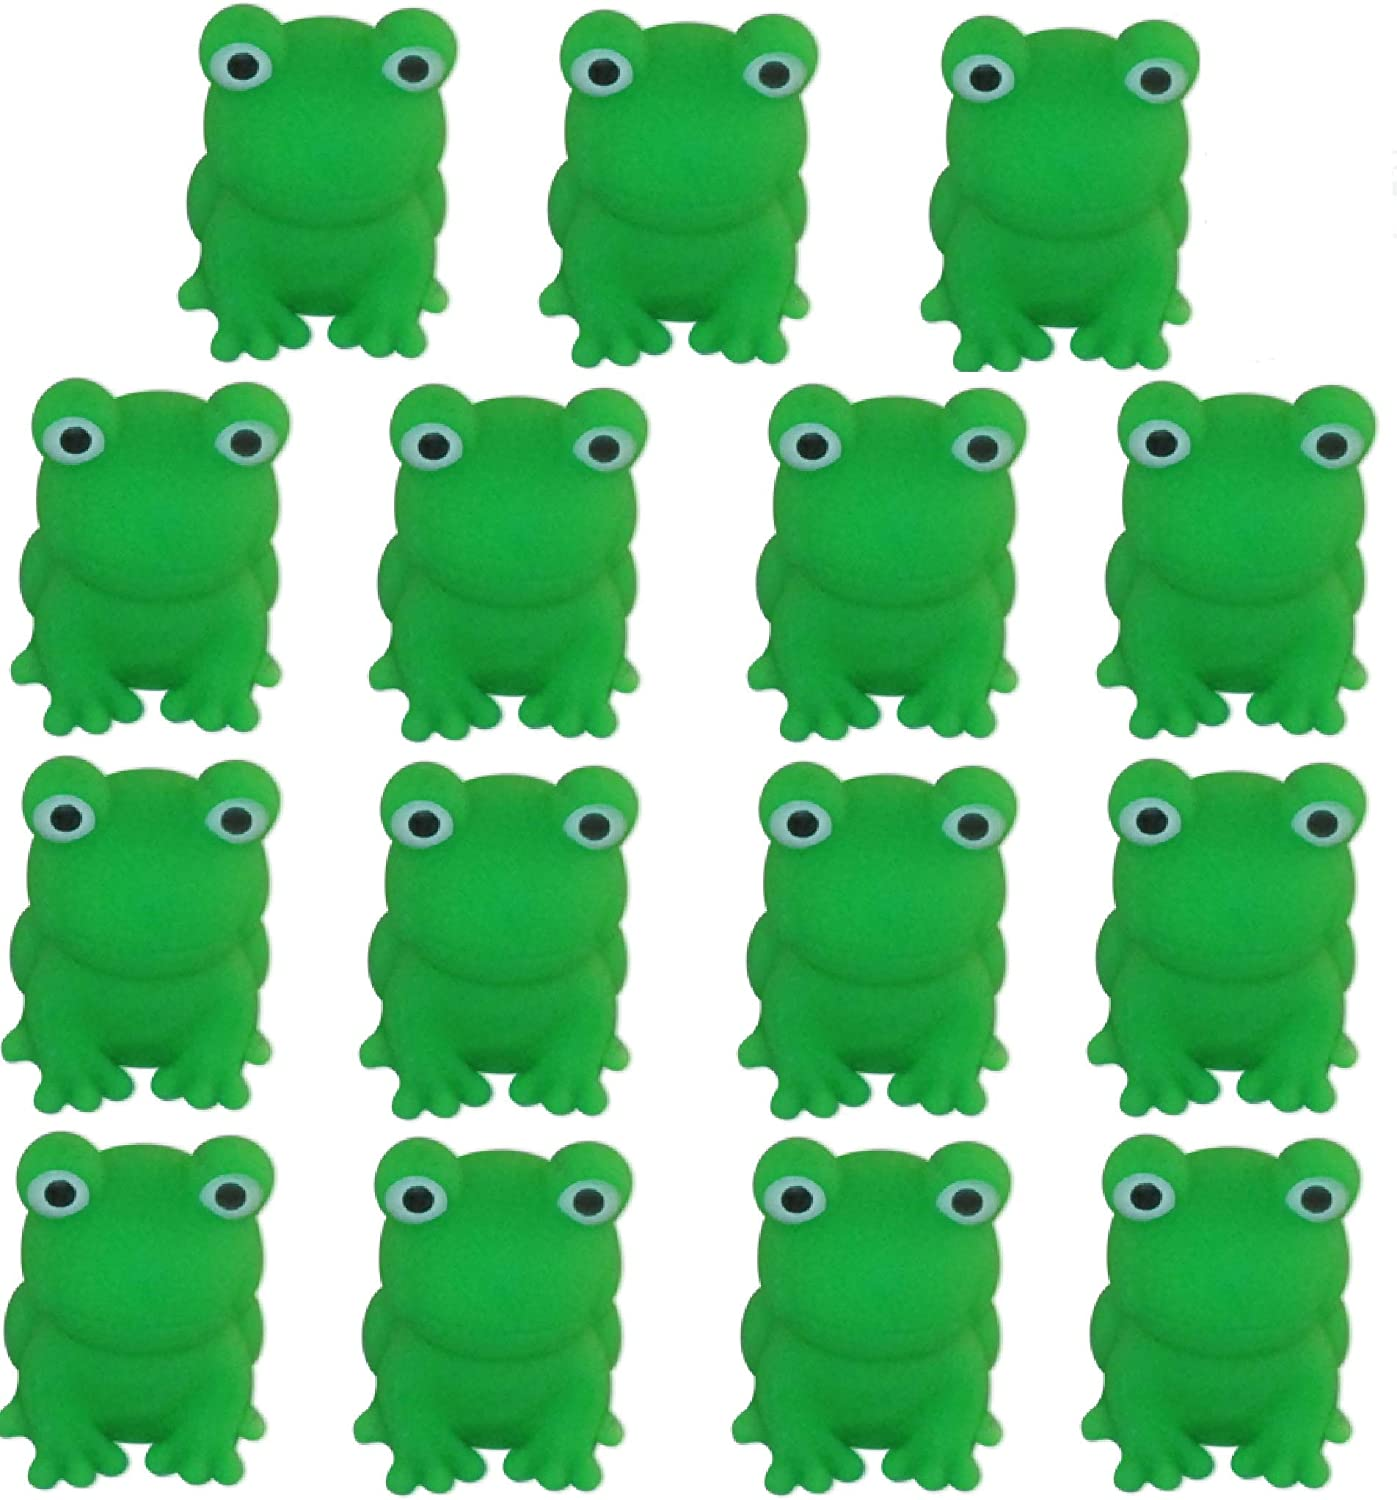 Passover Frogs - Bag of 15 Plastic Squeaking Frogs, Bright Green 10 Plague Frogs for Seder Table Decoration